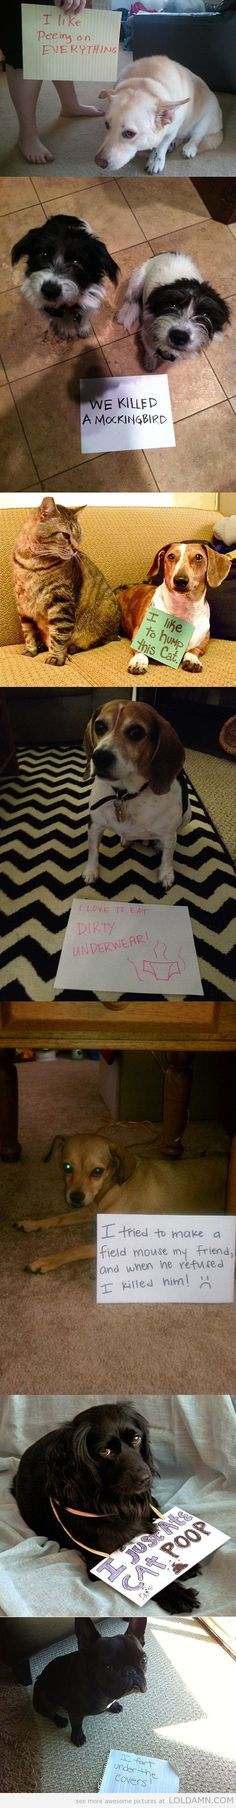 Dogs being shamed with signs